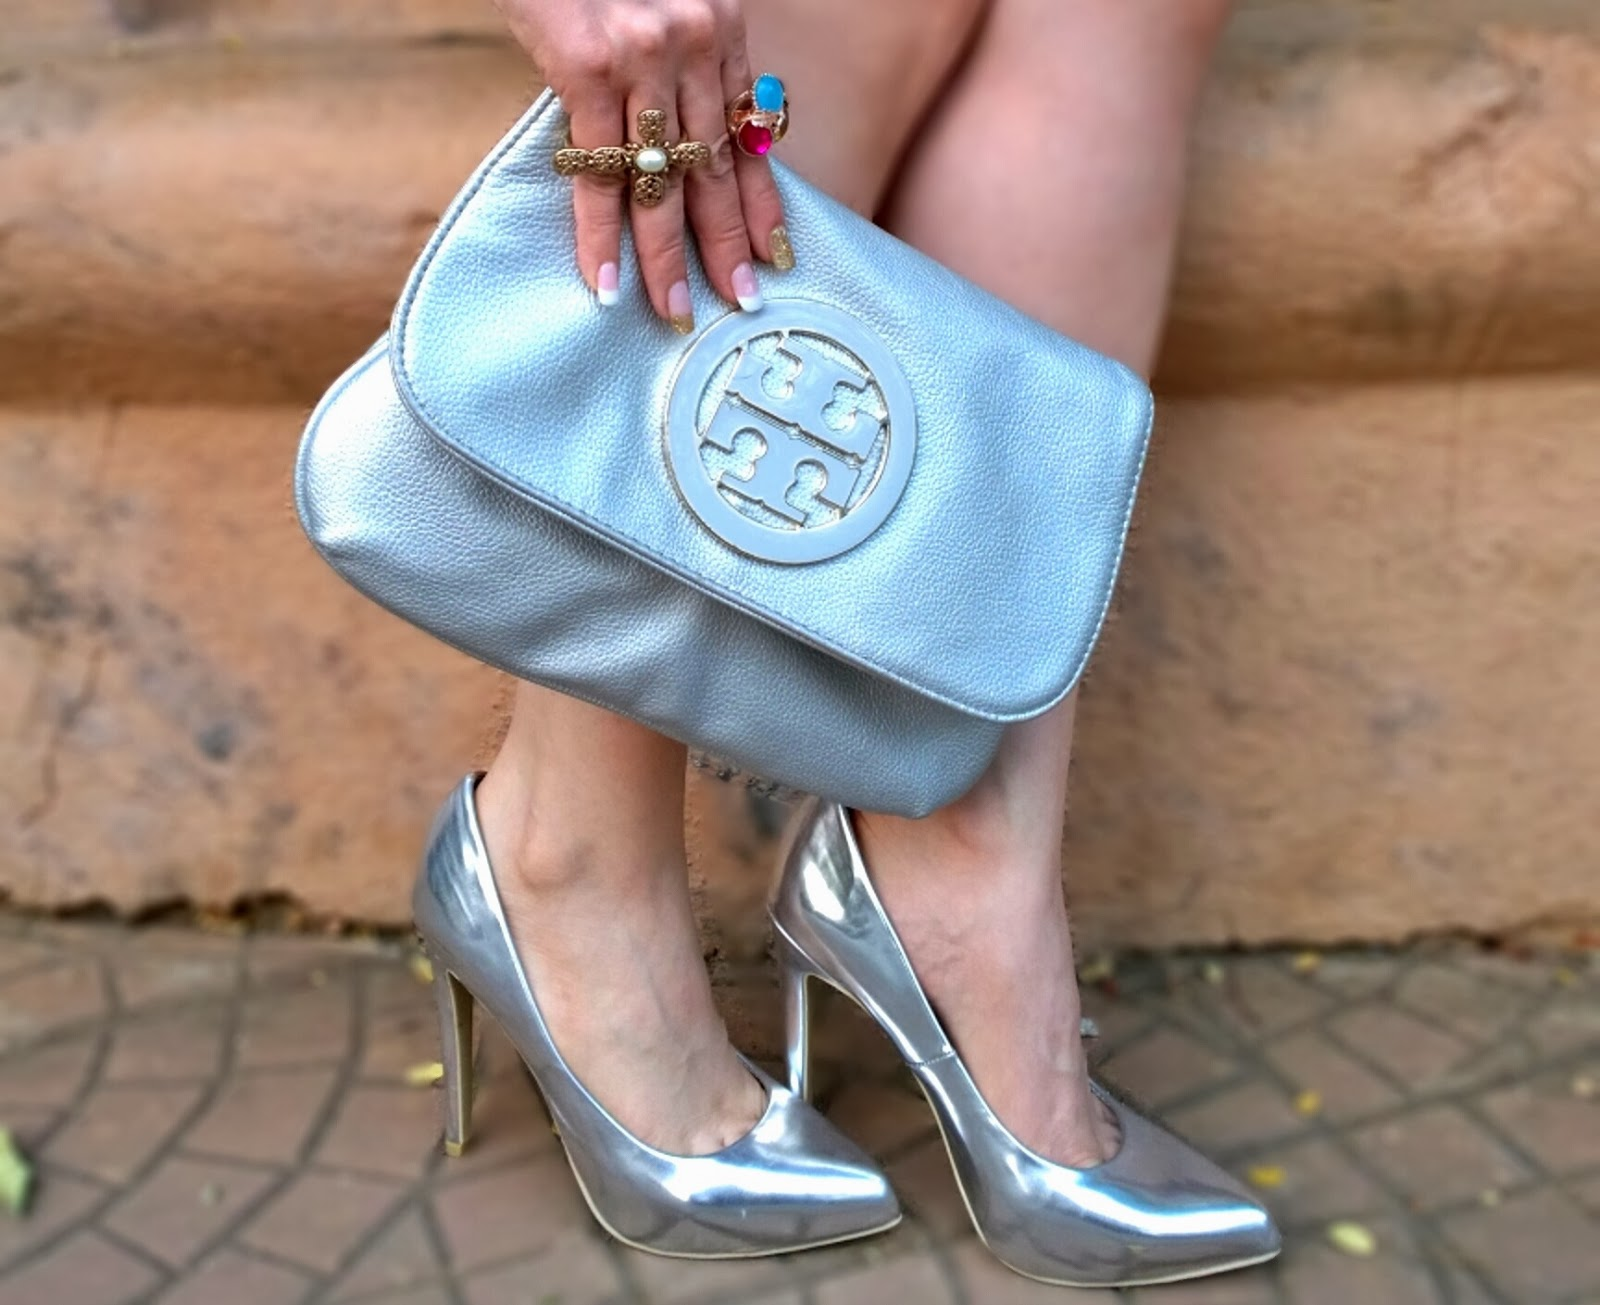 Silver Tory Burch Clutch & Silver Forever21 Pumps